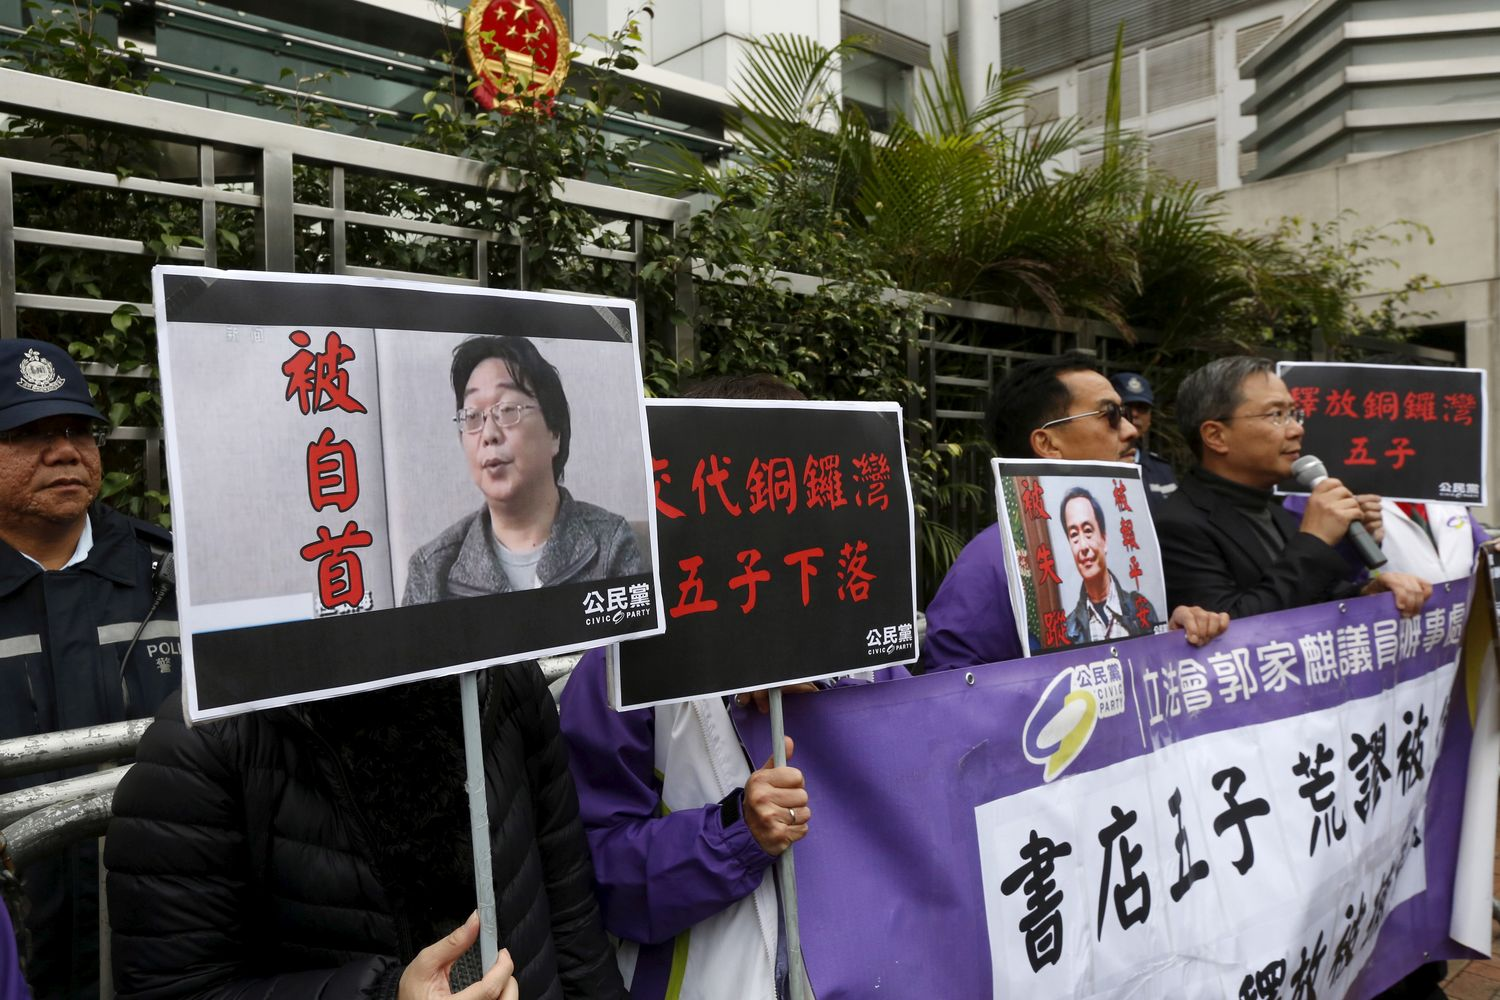 Members from the pro-democracy Civic Party carry a portrait of Gui Minhai (left) and Lee Bo during a protest outside the Chinese Liaison Office in Hong Kong in early 2016. (Reuters photo)